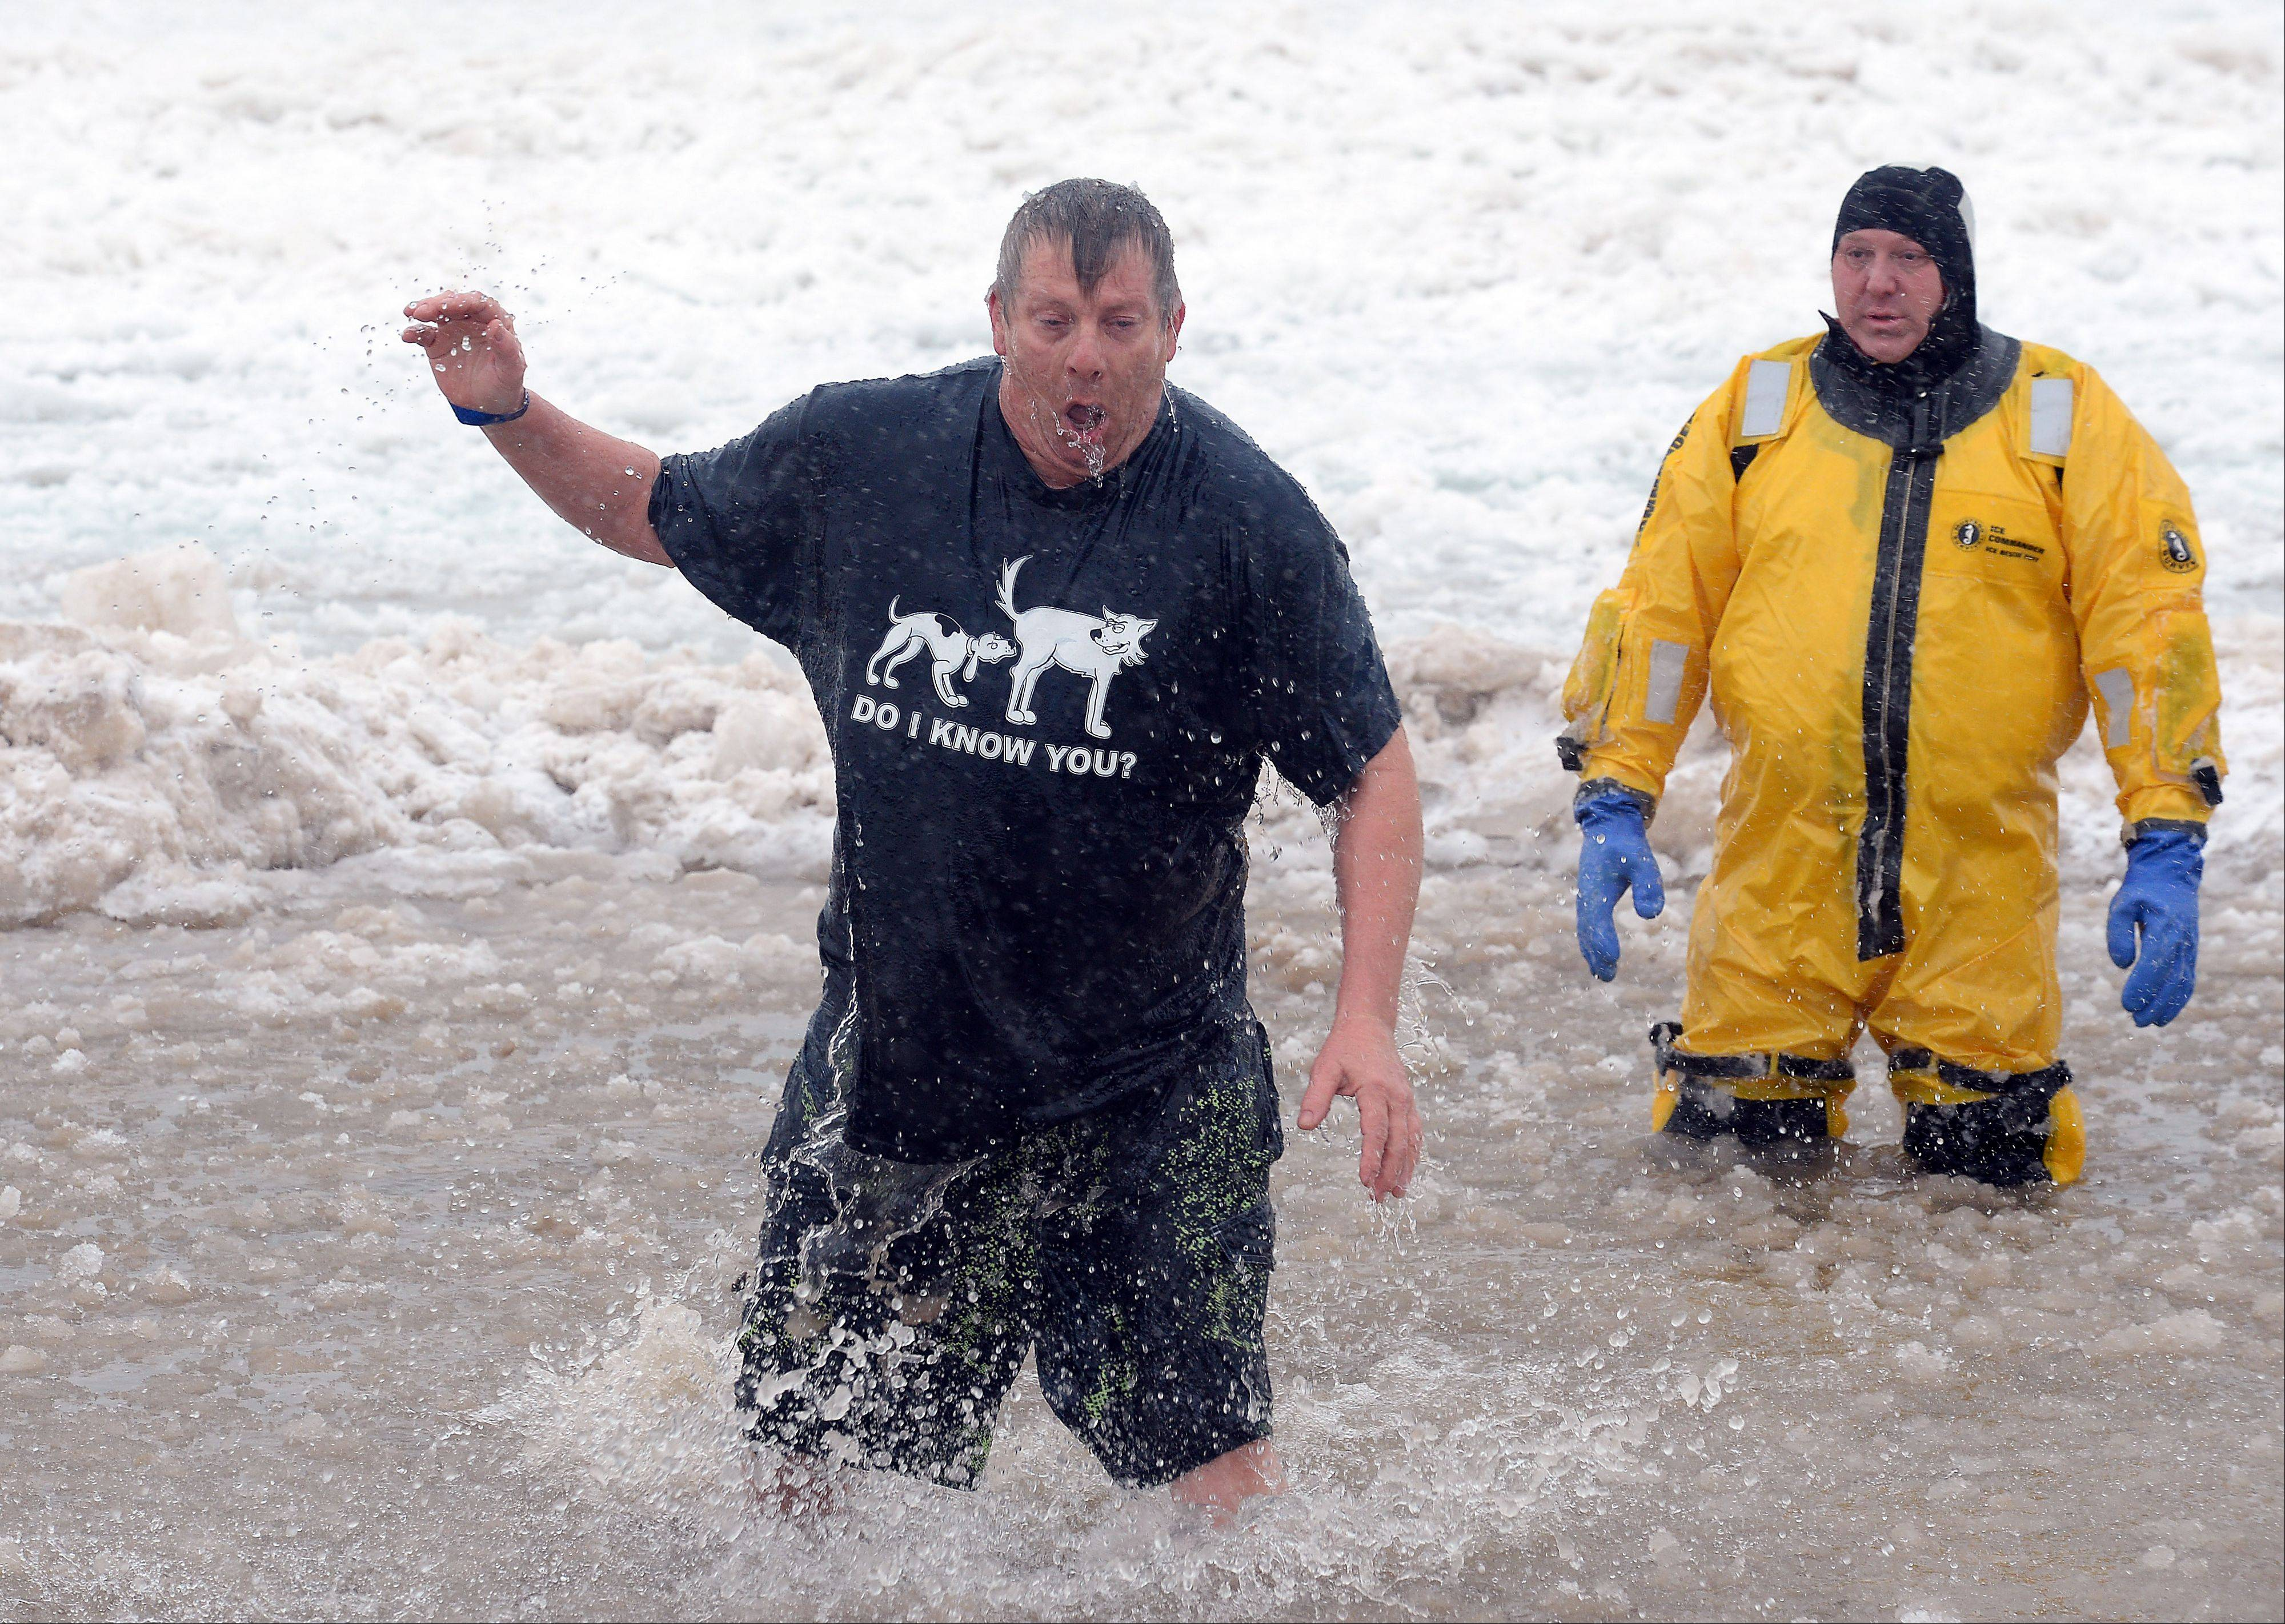 Dave Madlener of Chicago feels the sting of the freezing water.